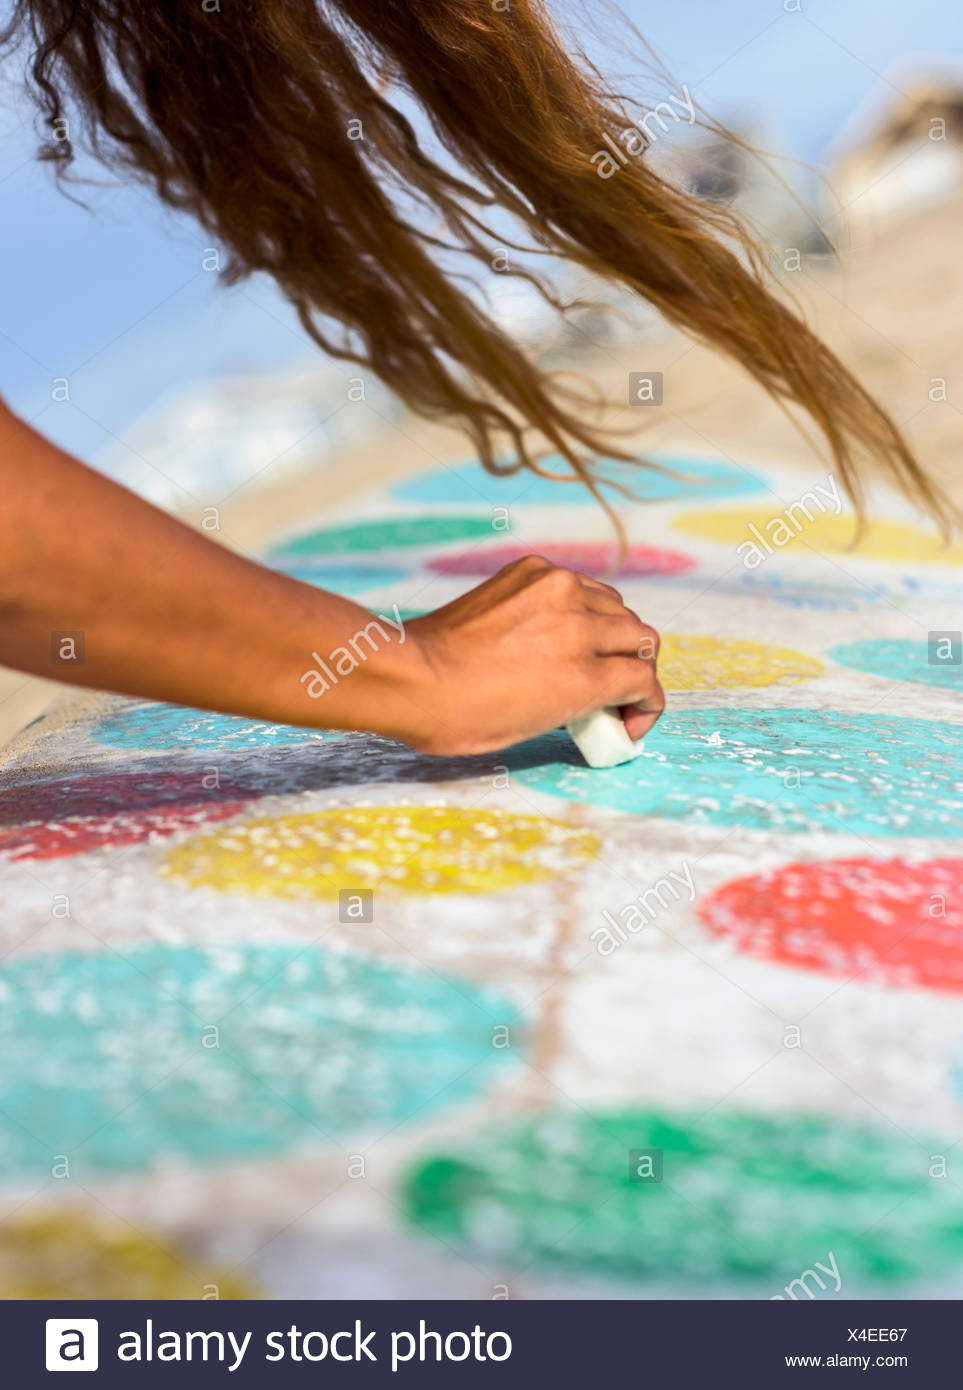 A female surfer waxes her longboard surfboard on a windy day in Newport Beach, Calif. - Stock Image